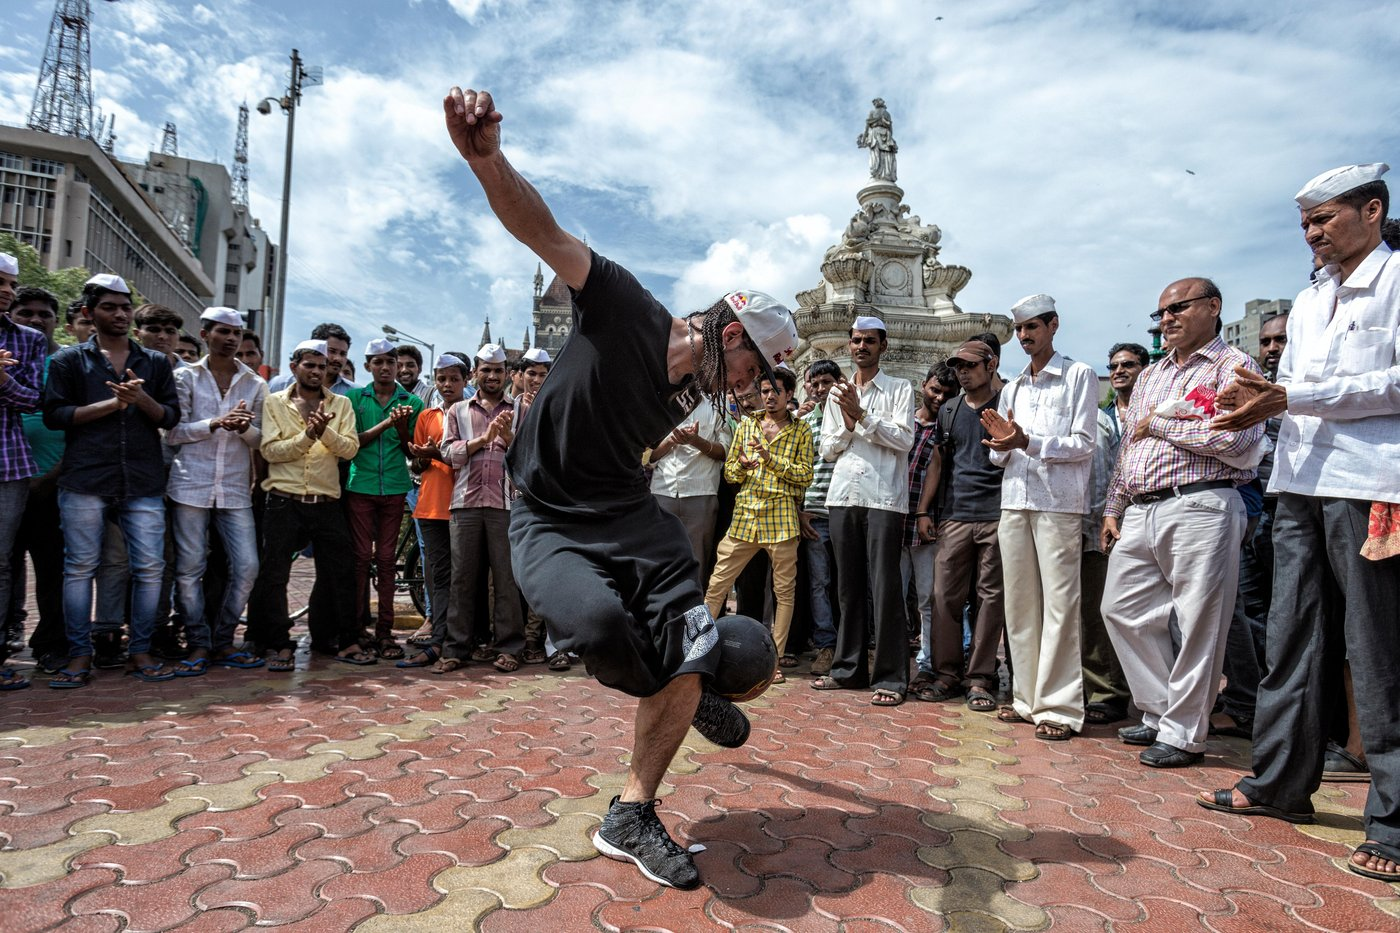 sean-garnier-does-freestyle-soccer-tricks-in-mumbai